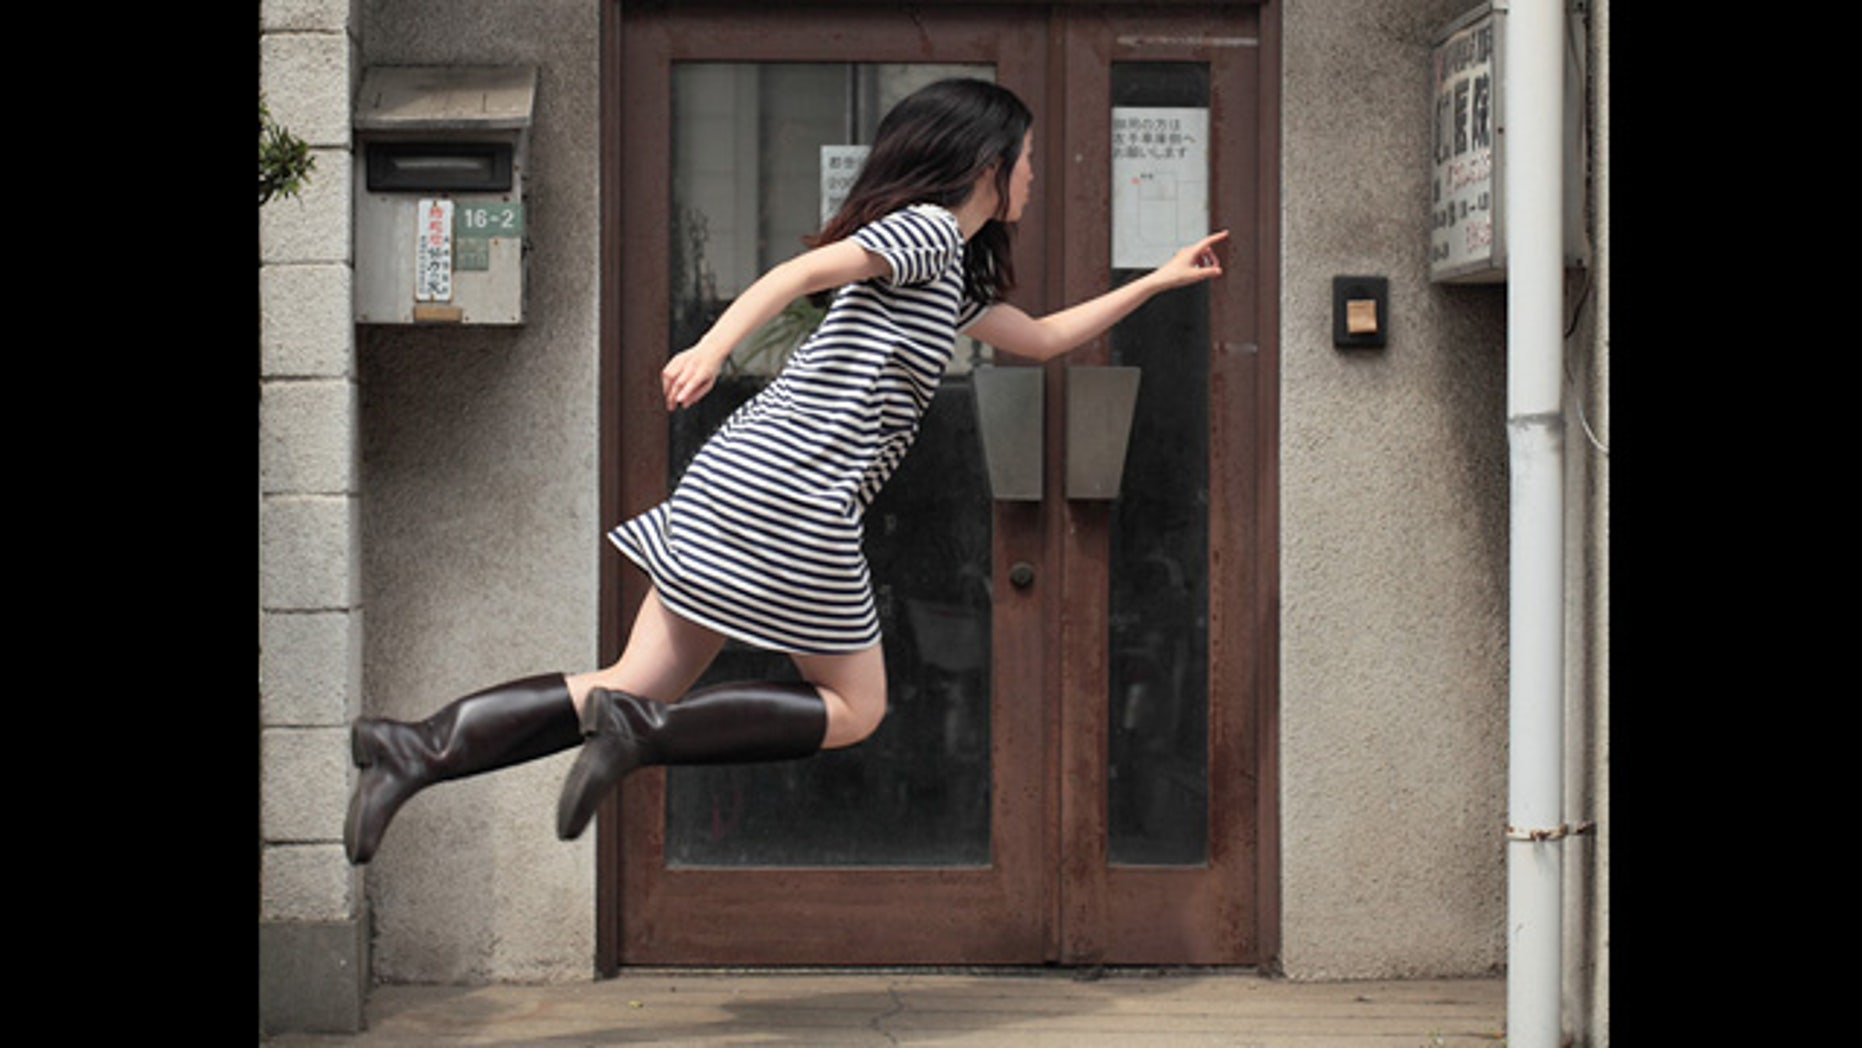 Photographer Natsumi Hayashi captures herself 'levitating' outside an abandoned Tokyo clinic. These peaceful shots sometimes take 300 tries to capture.